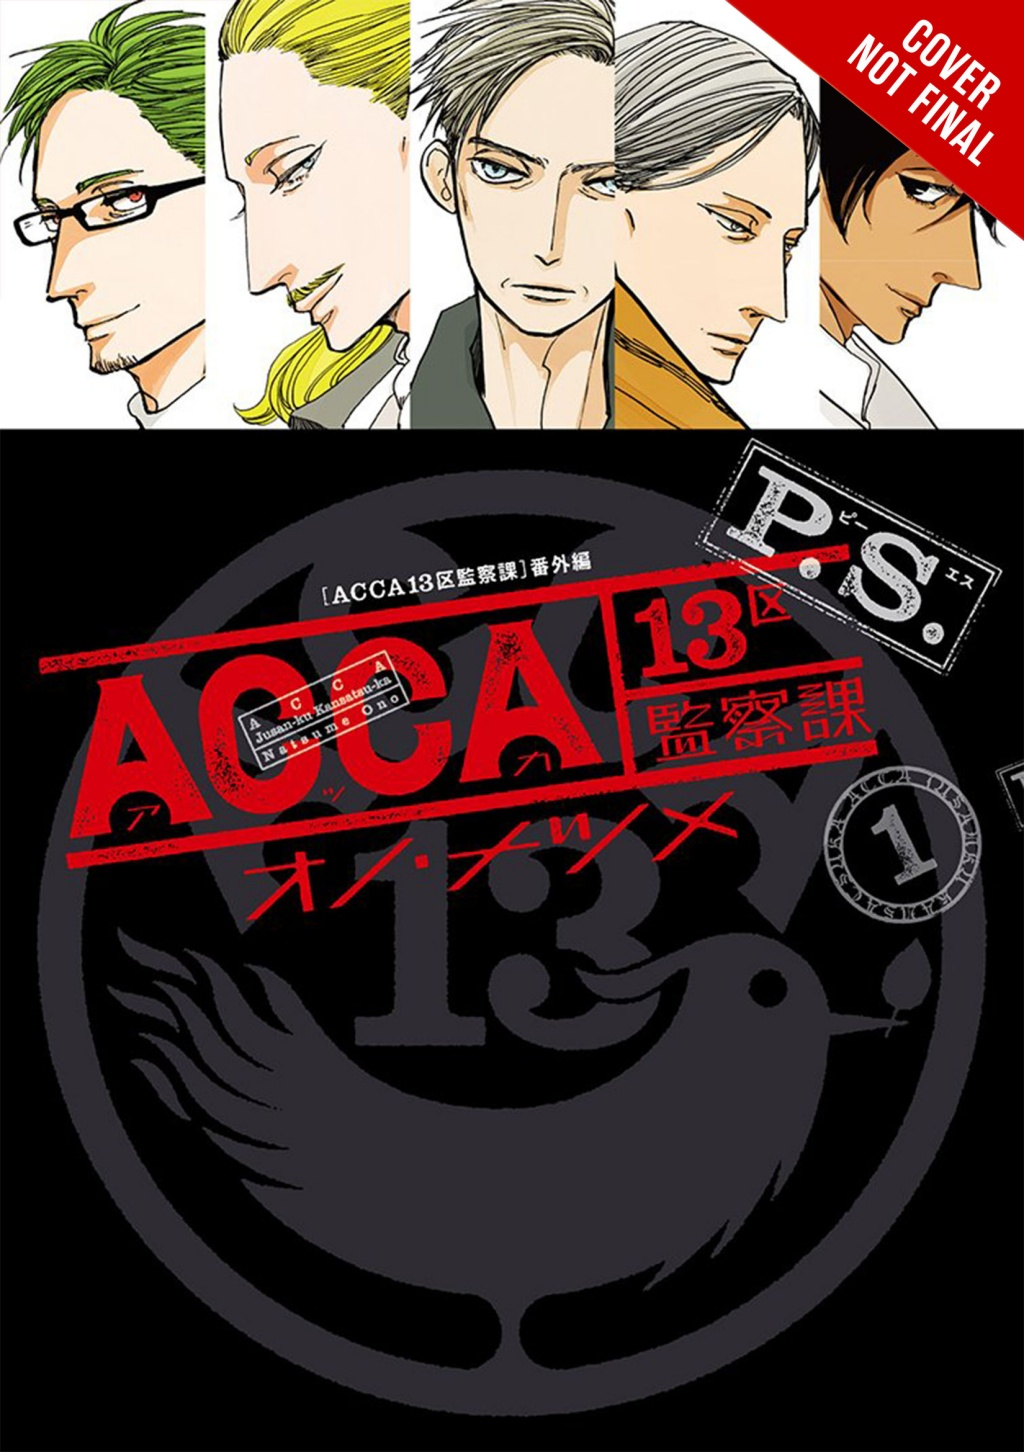 ACCA: 13-Territory Inspection Department P.S